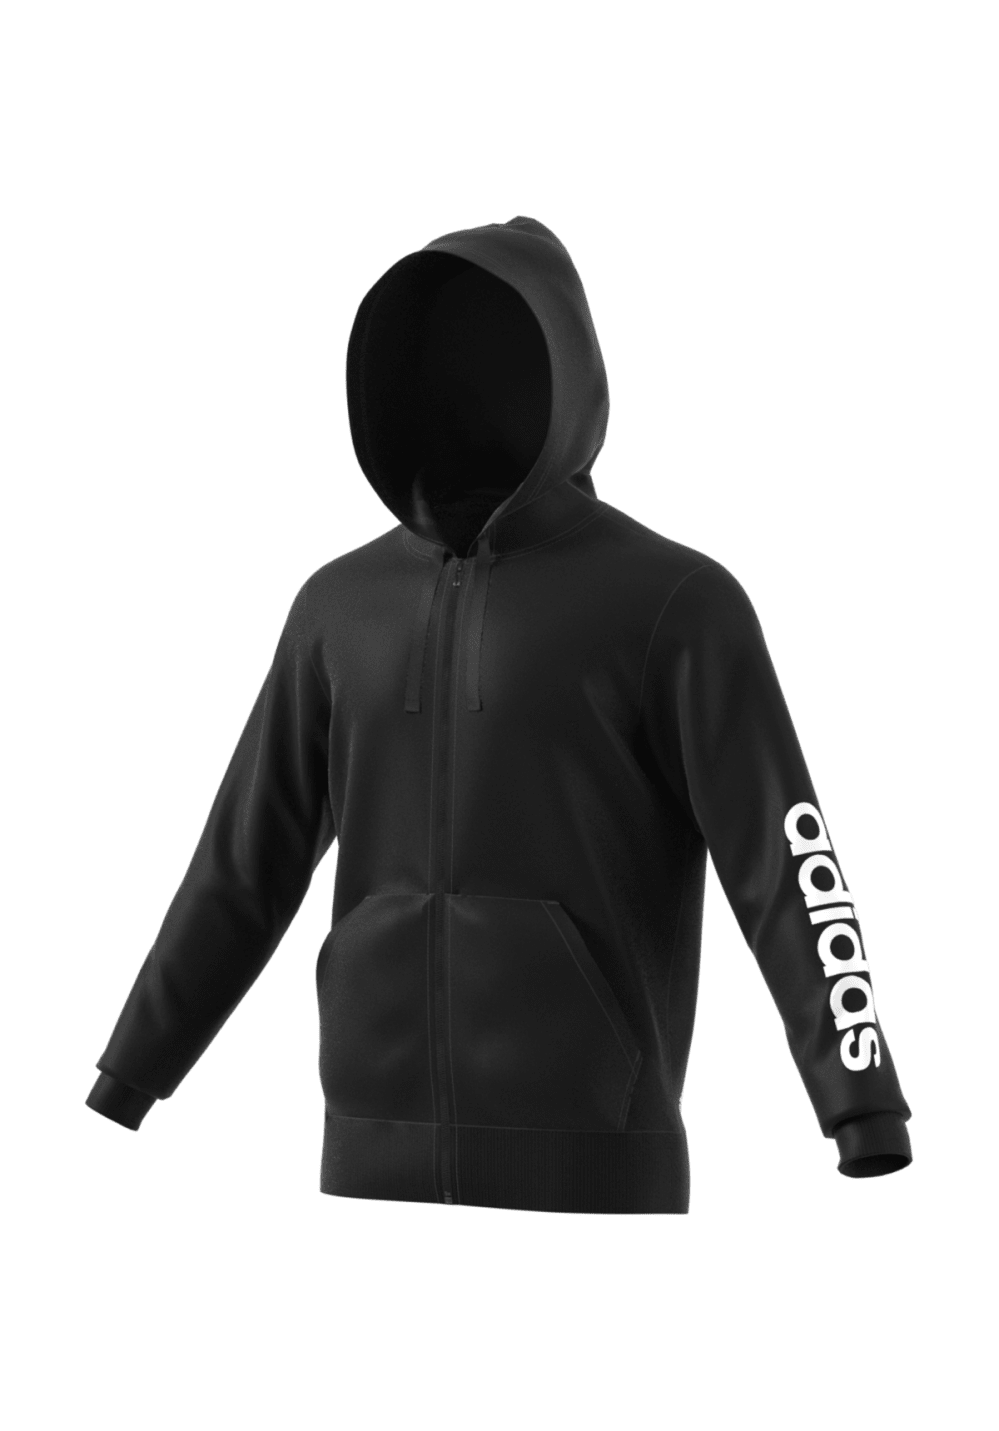 Essentials Pulls Hood FZBqxBw4 Linear Full Adidas Pour Homme Zip Sweats Y86nq